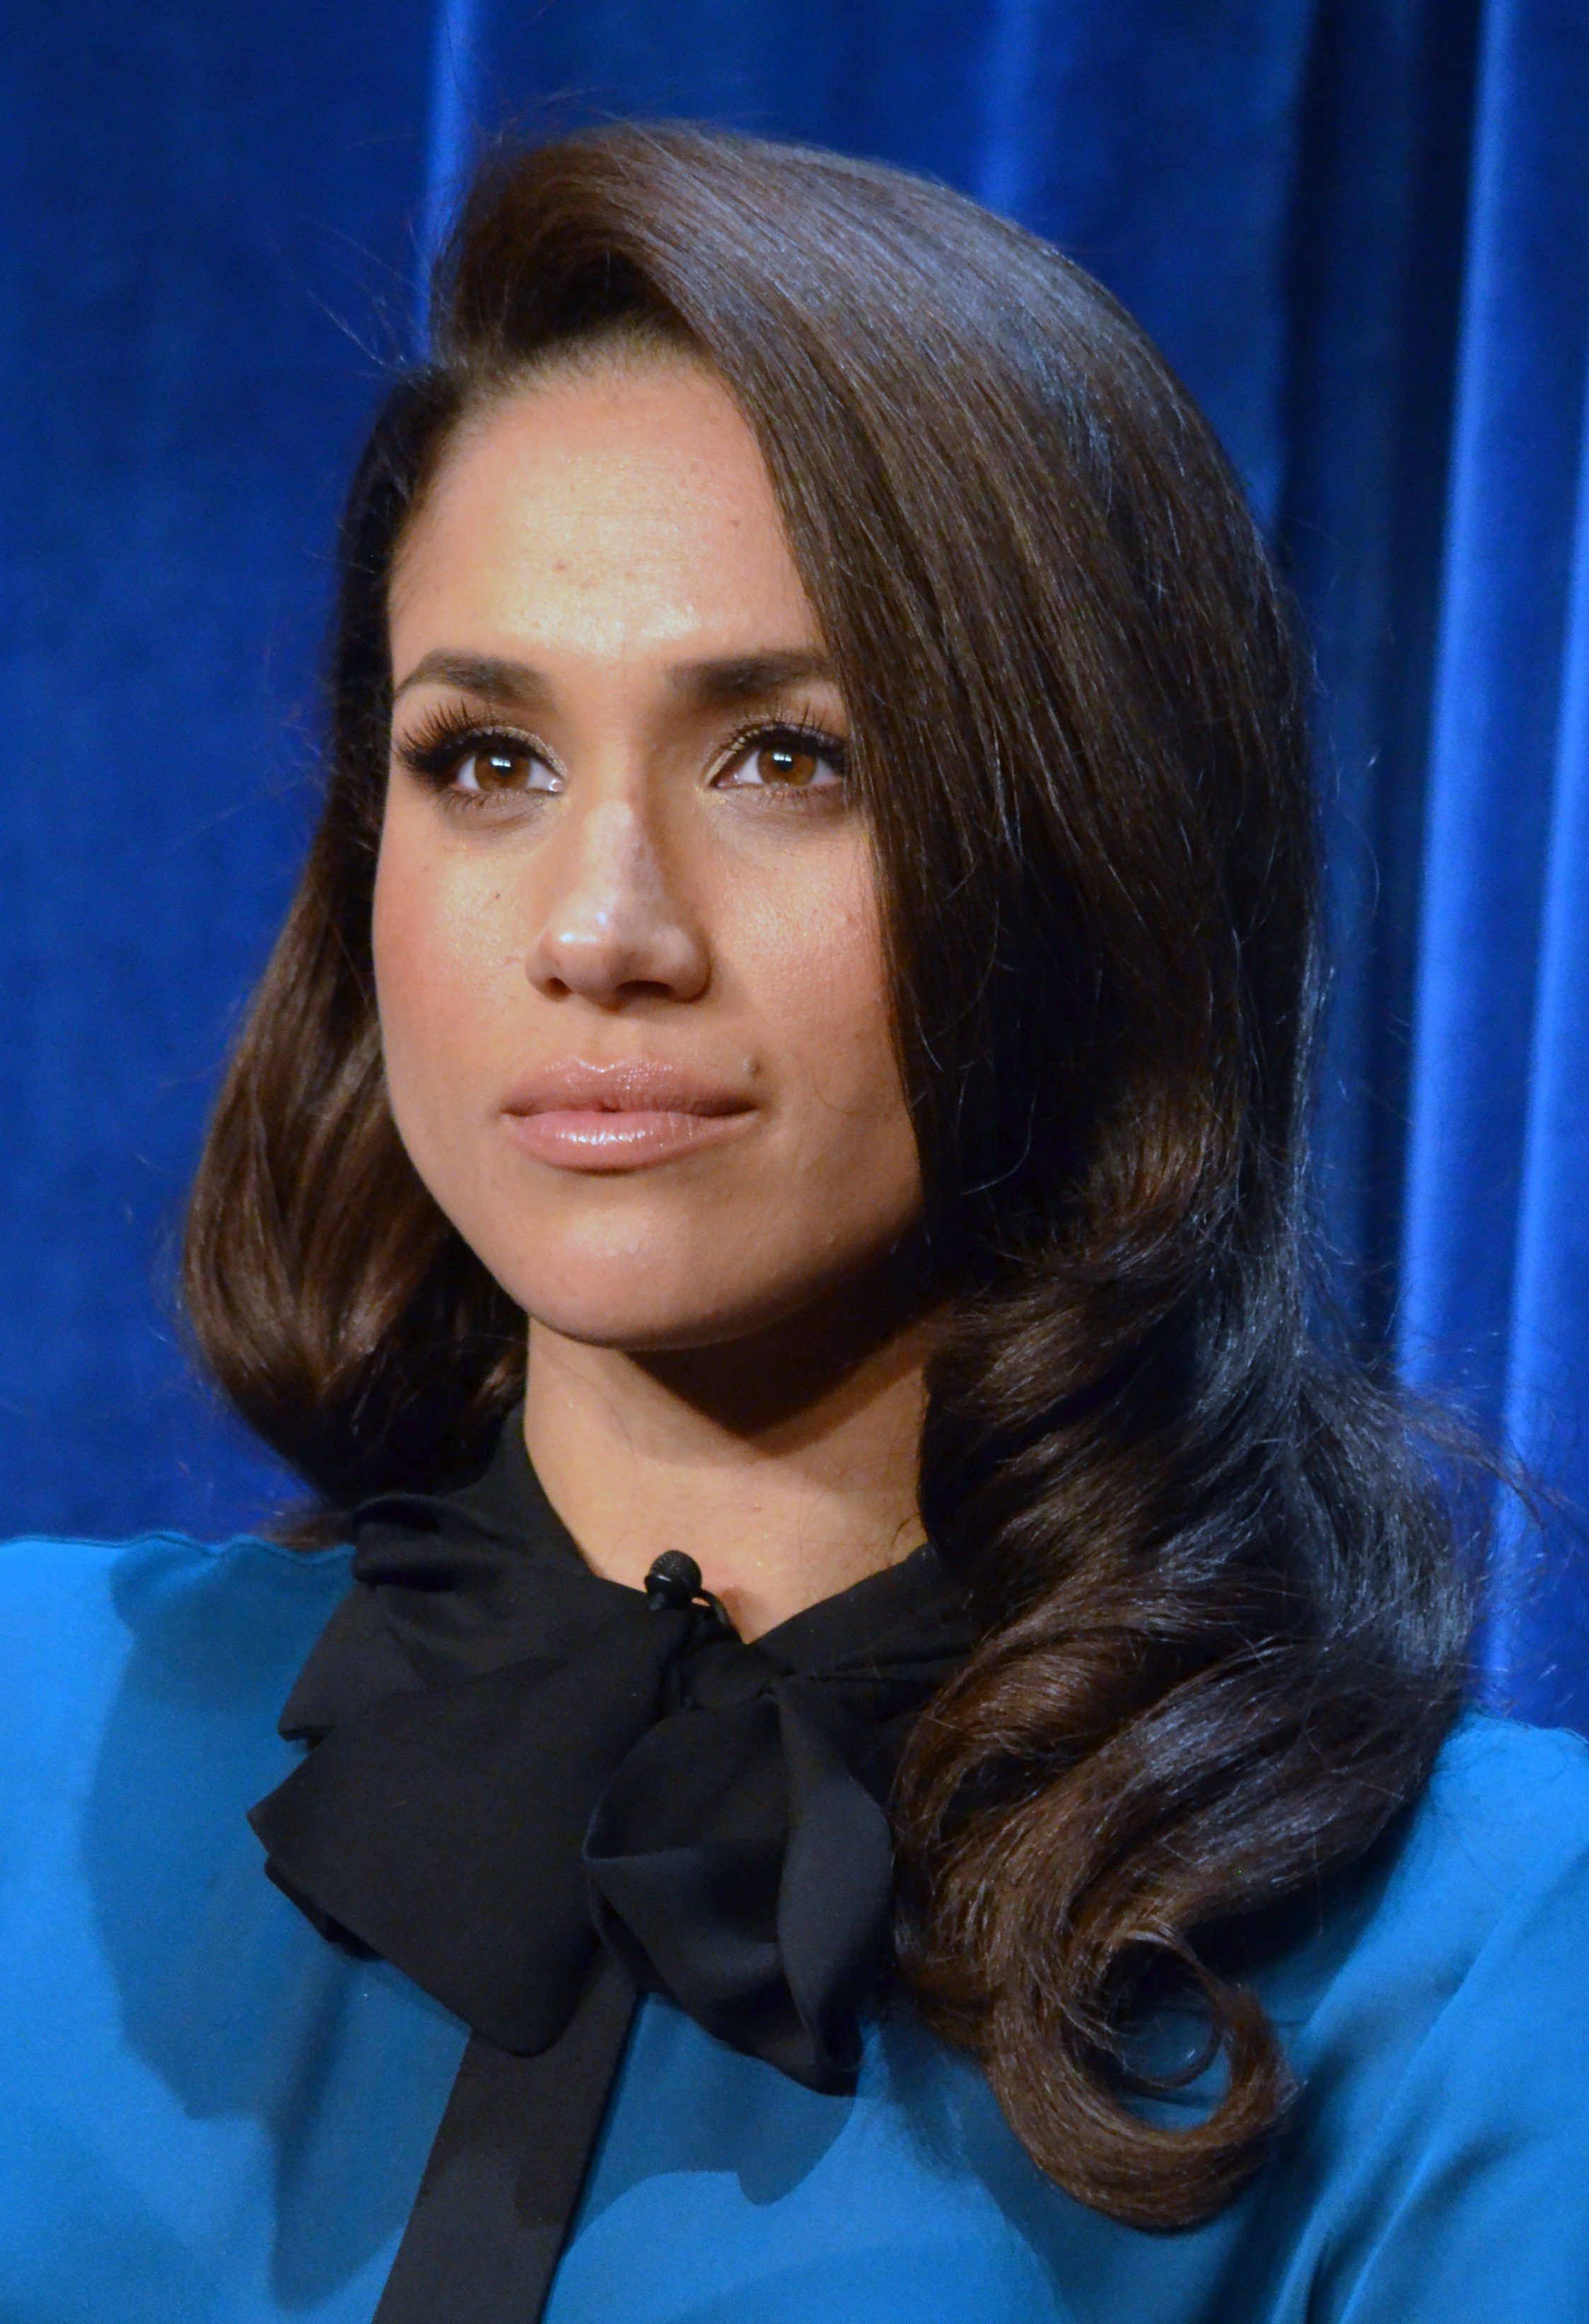 Meghan Markle Free Download Wallpaper For Mobile